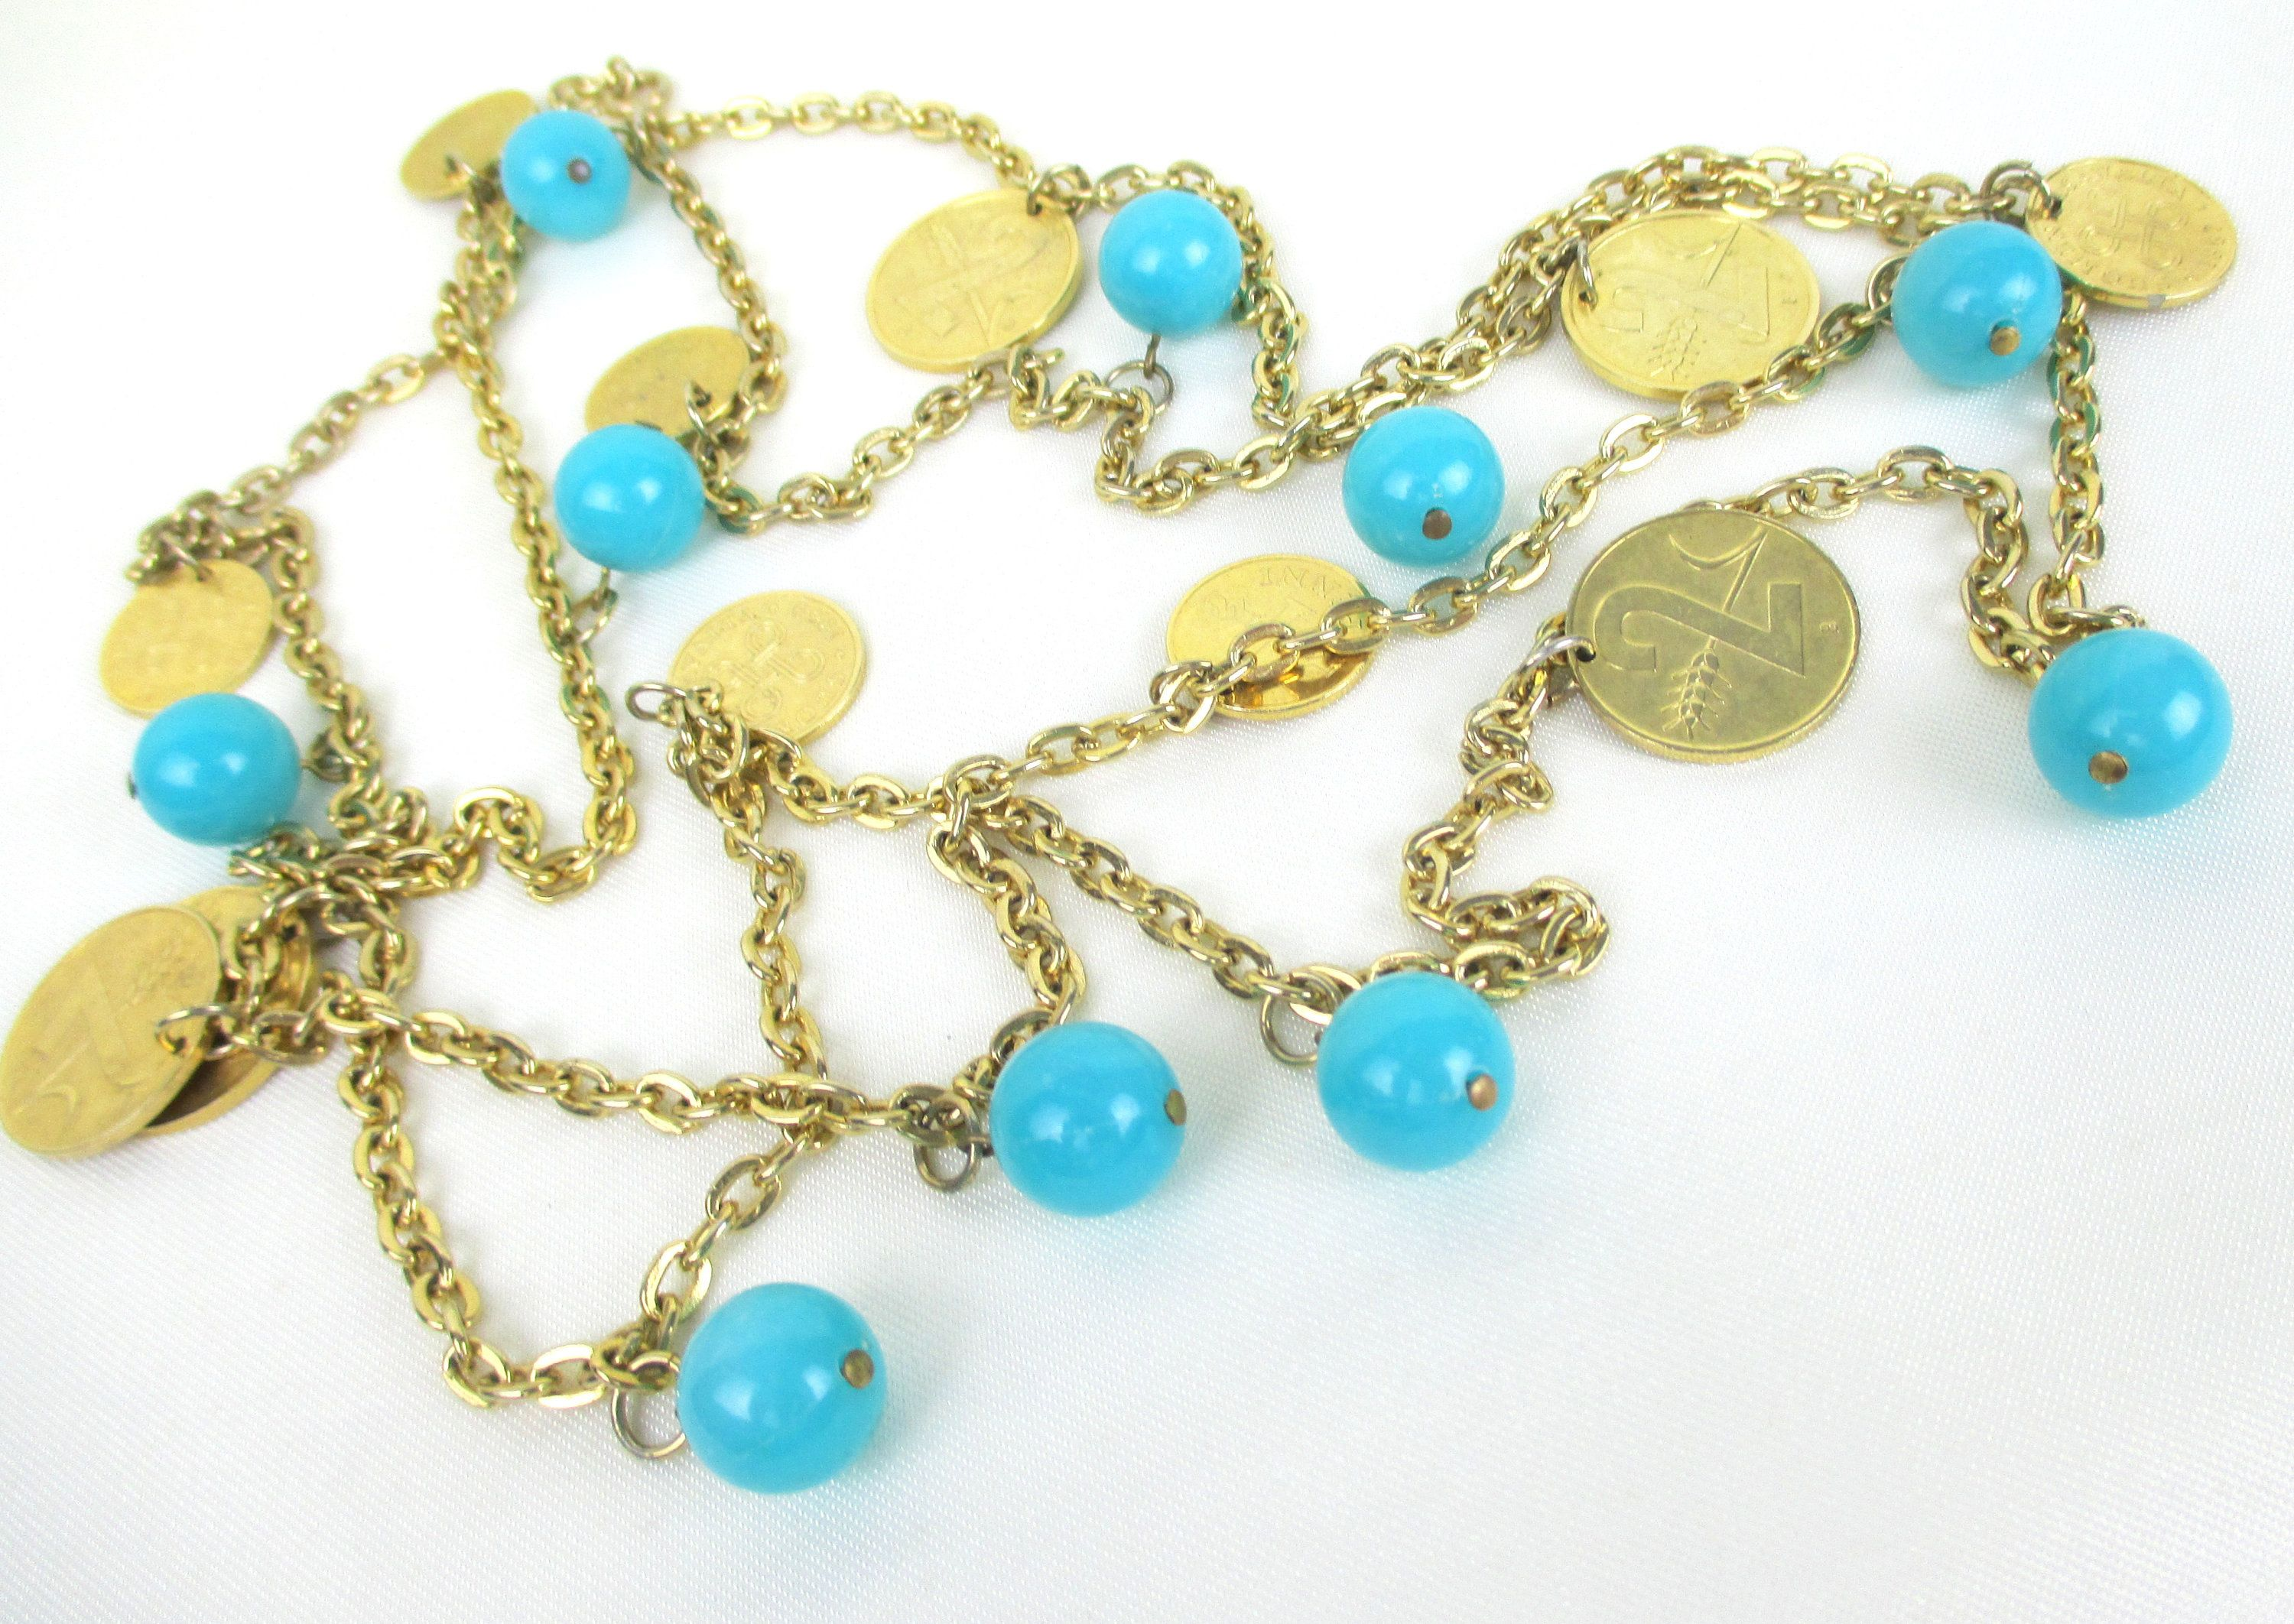 Center beads are butterflies Bracelet beaded on gold wire with translucent yellow beads Goldtone accent beads.